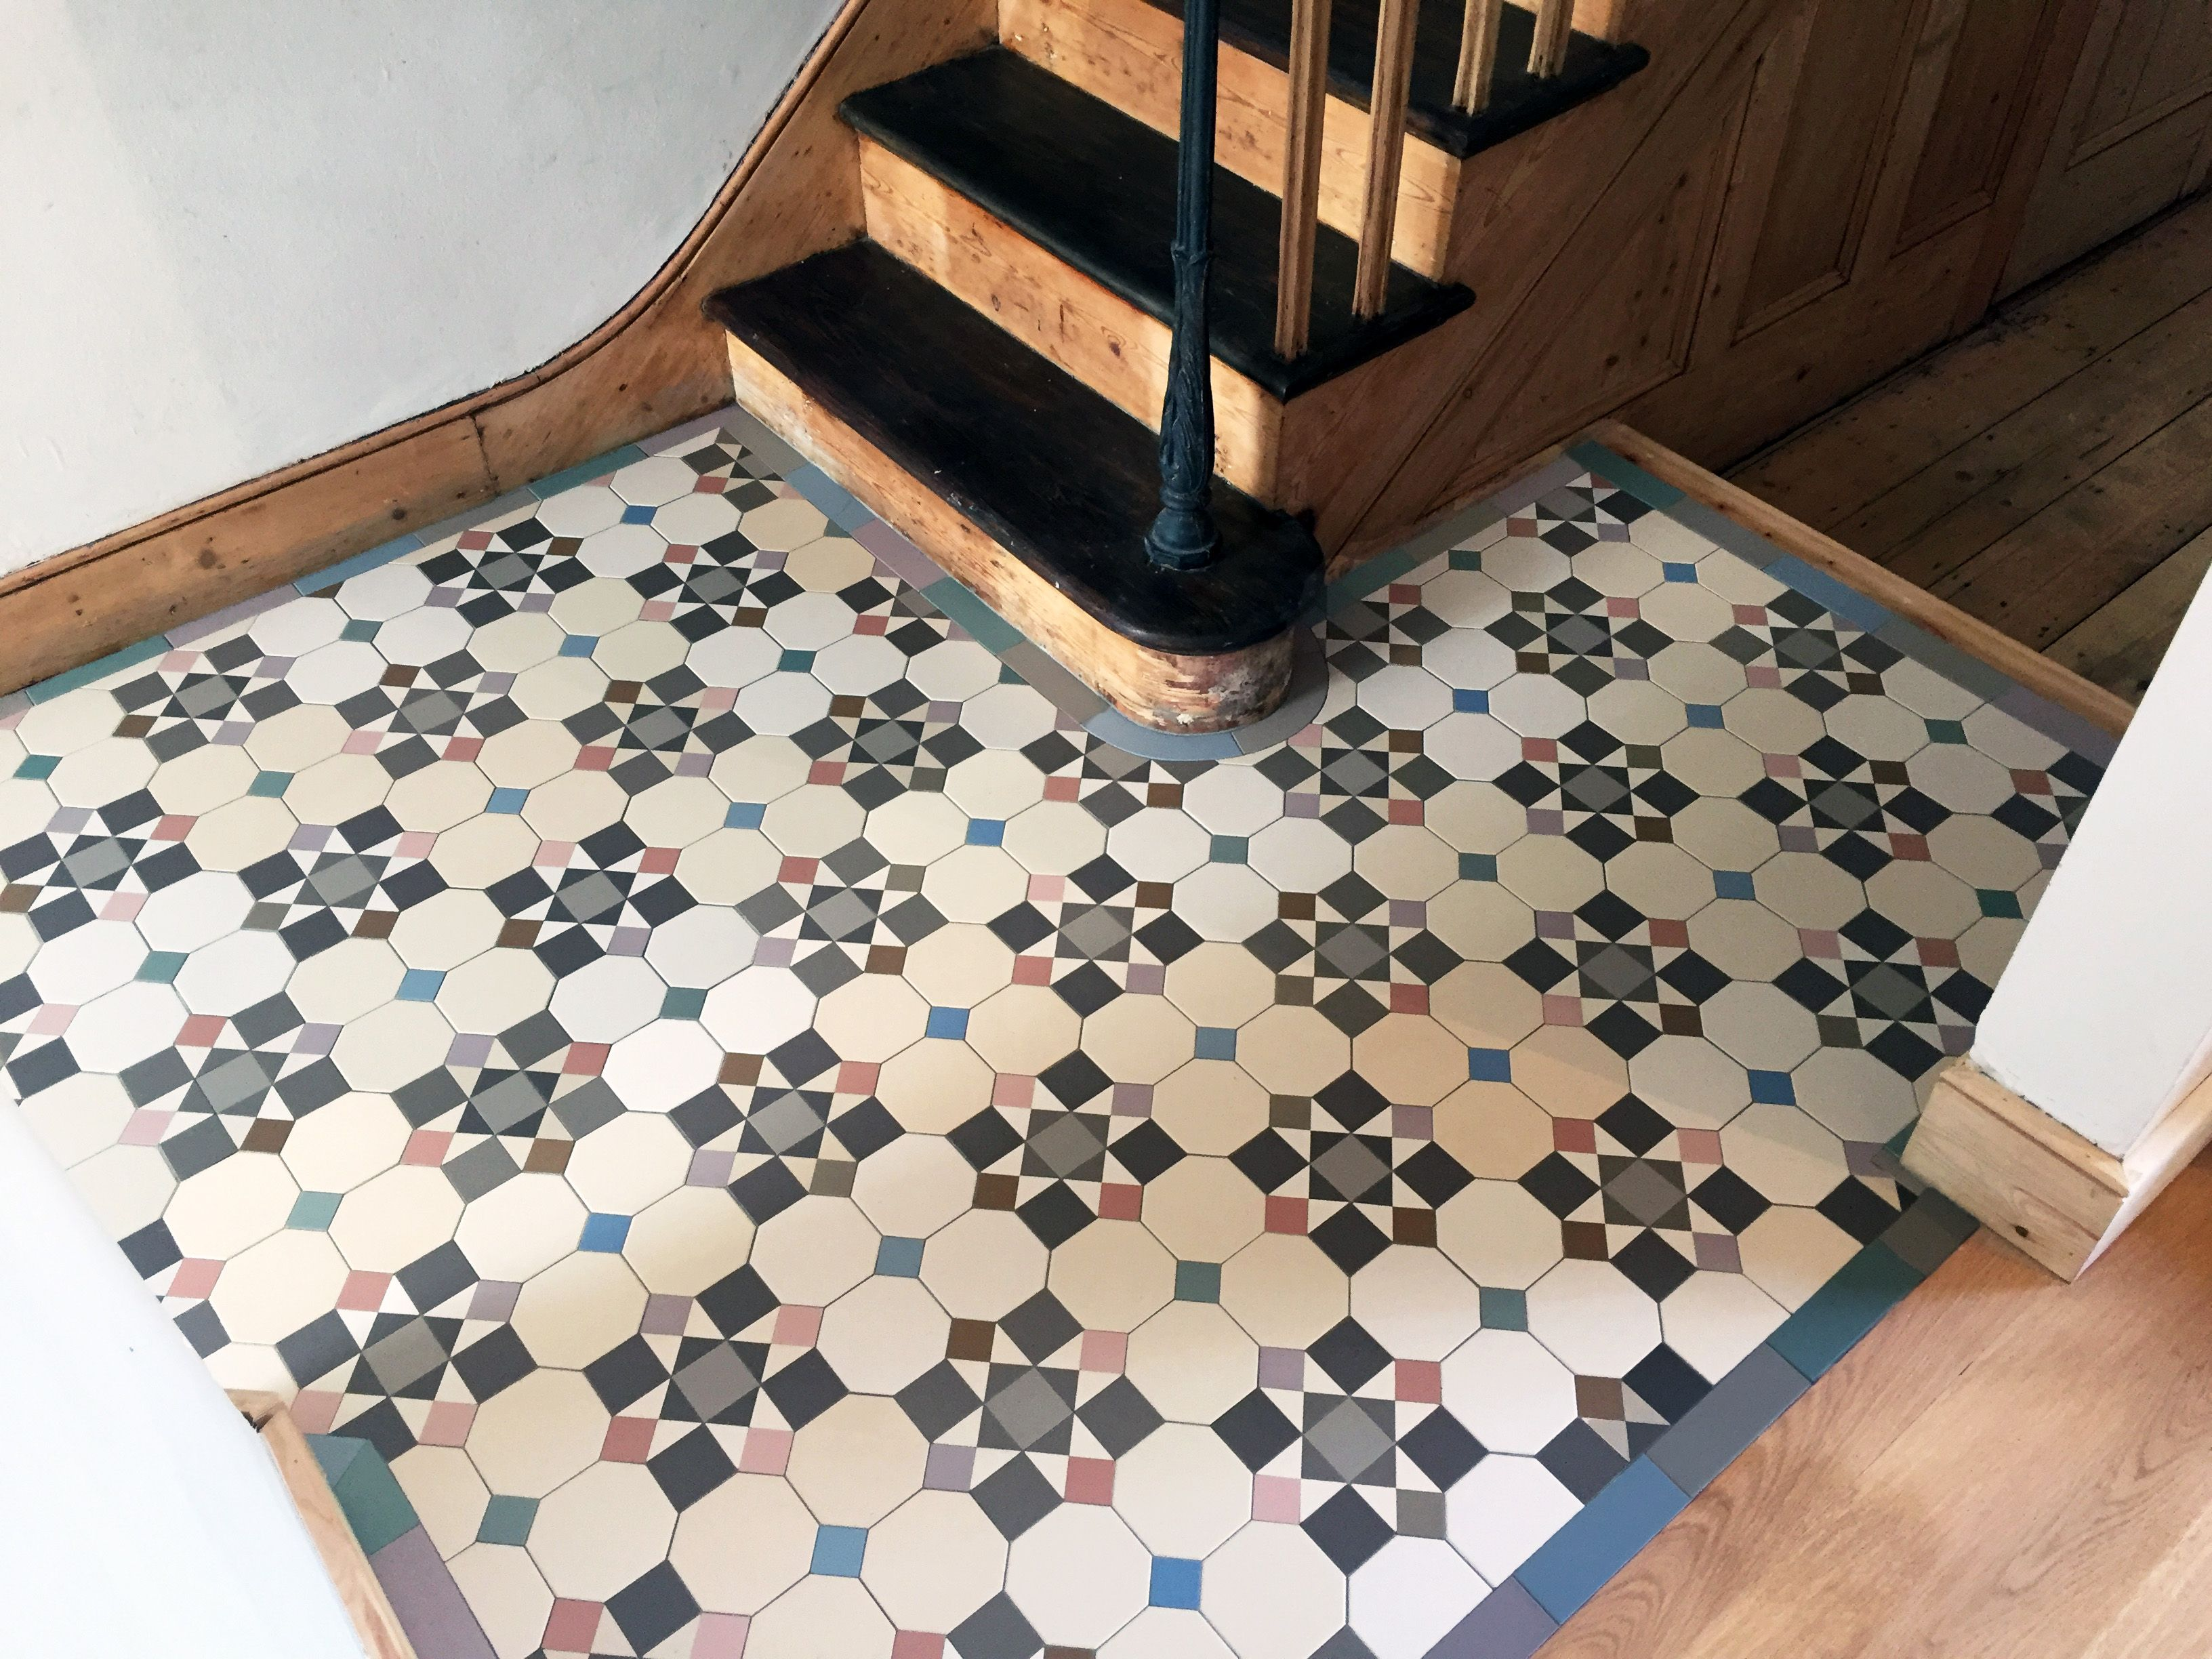 London Mosaic Victorian Floor Tiles Click On The Image For More Information Contact Us On Info Londonmosa Tile Floor Colorful Tile Floor Tile Floor Diy